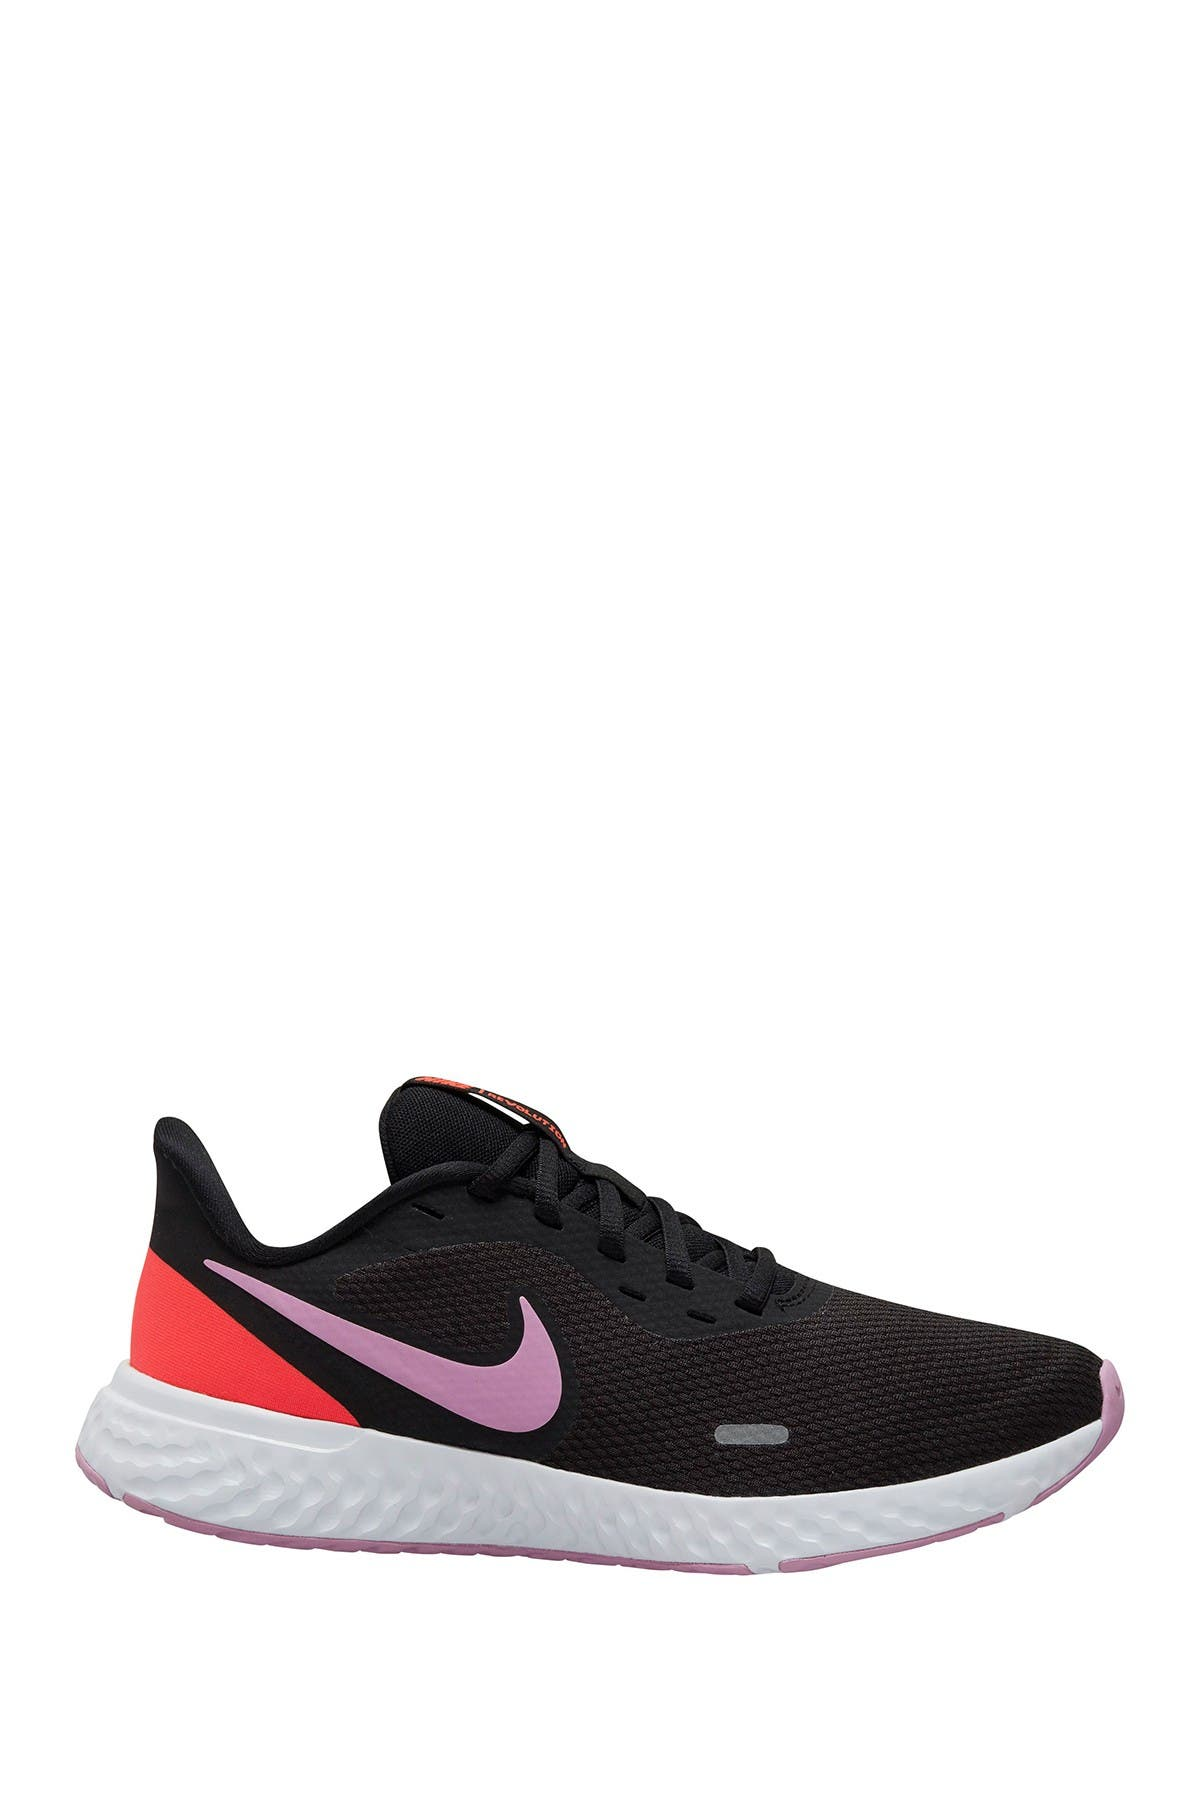 Image of Nike Revolution 5 Running Shoe